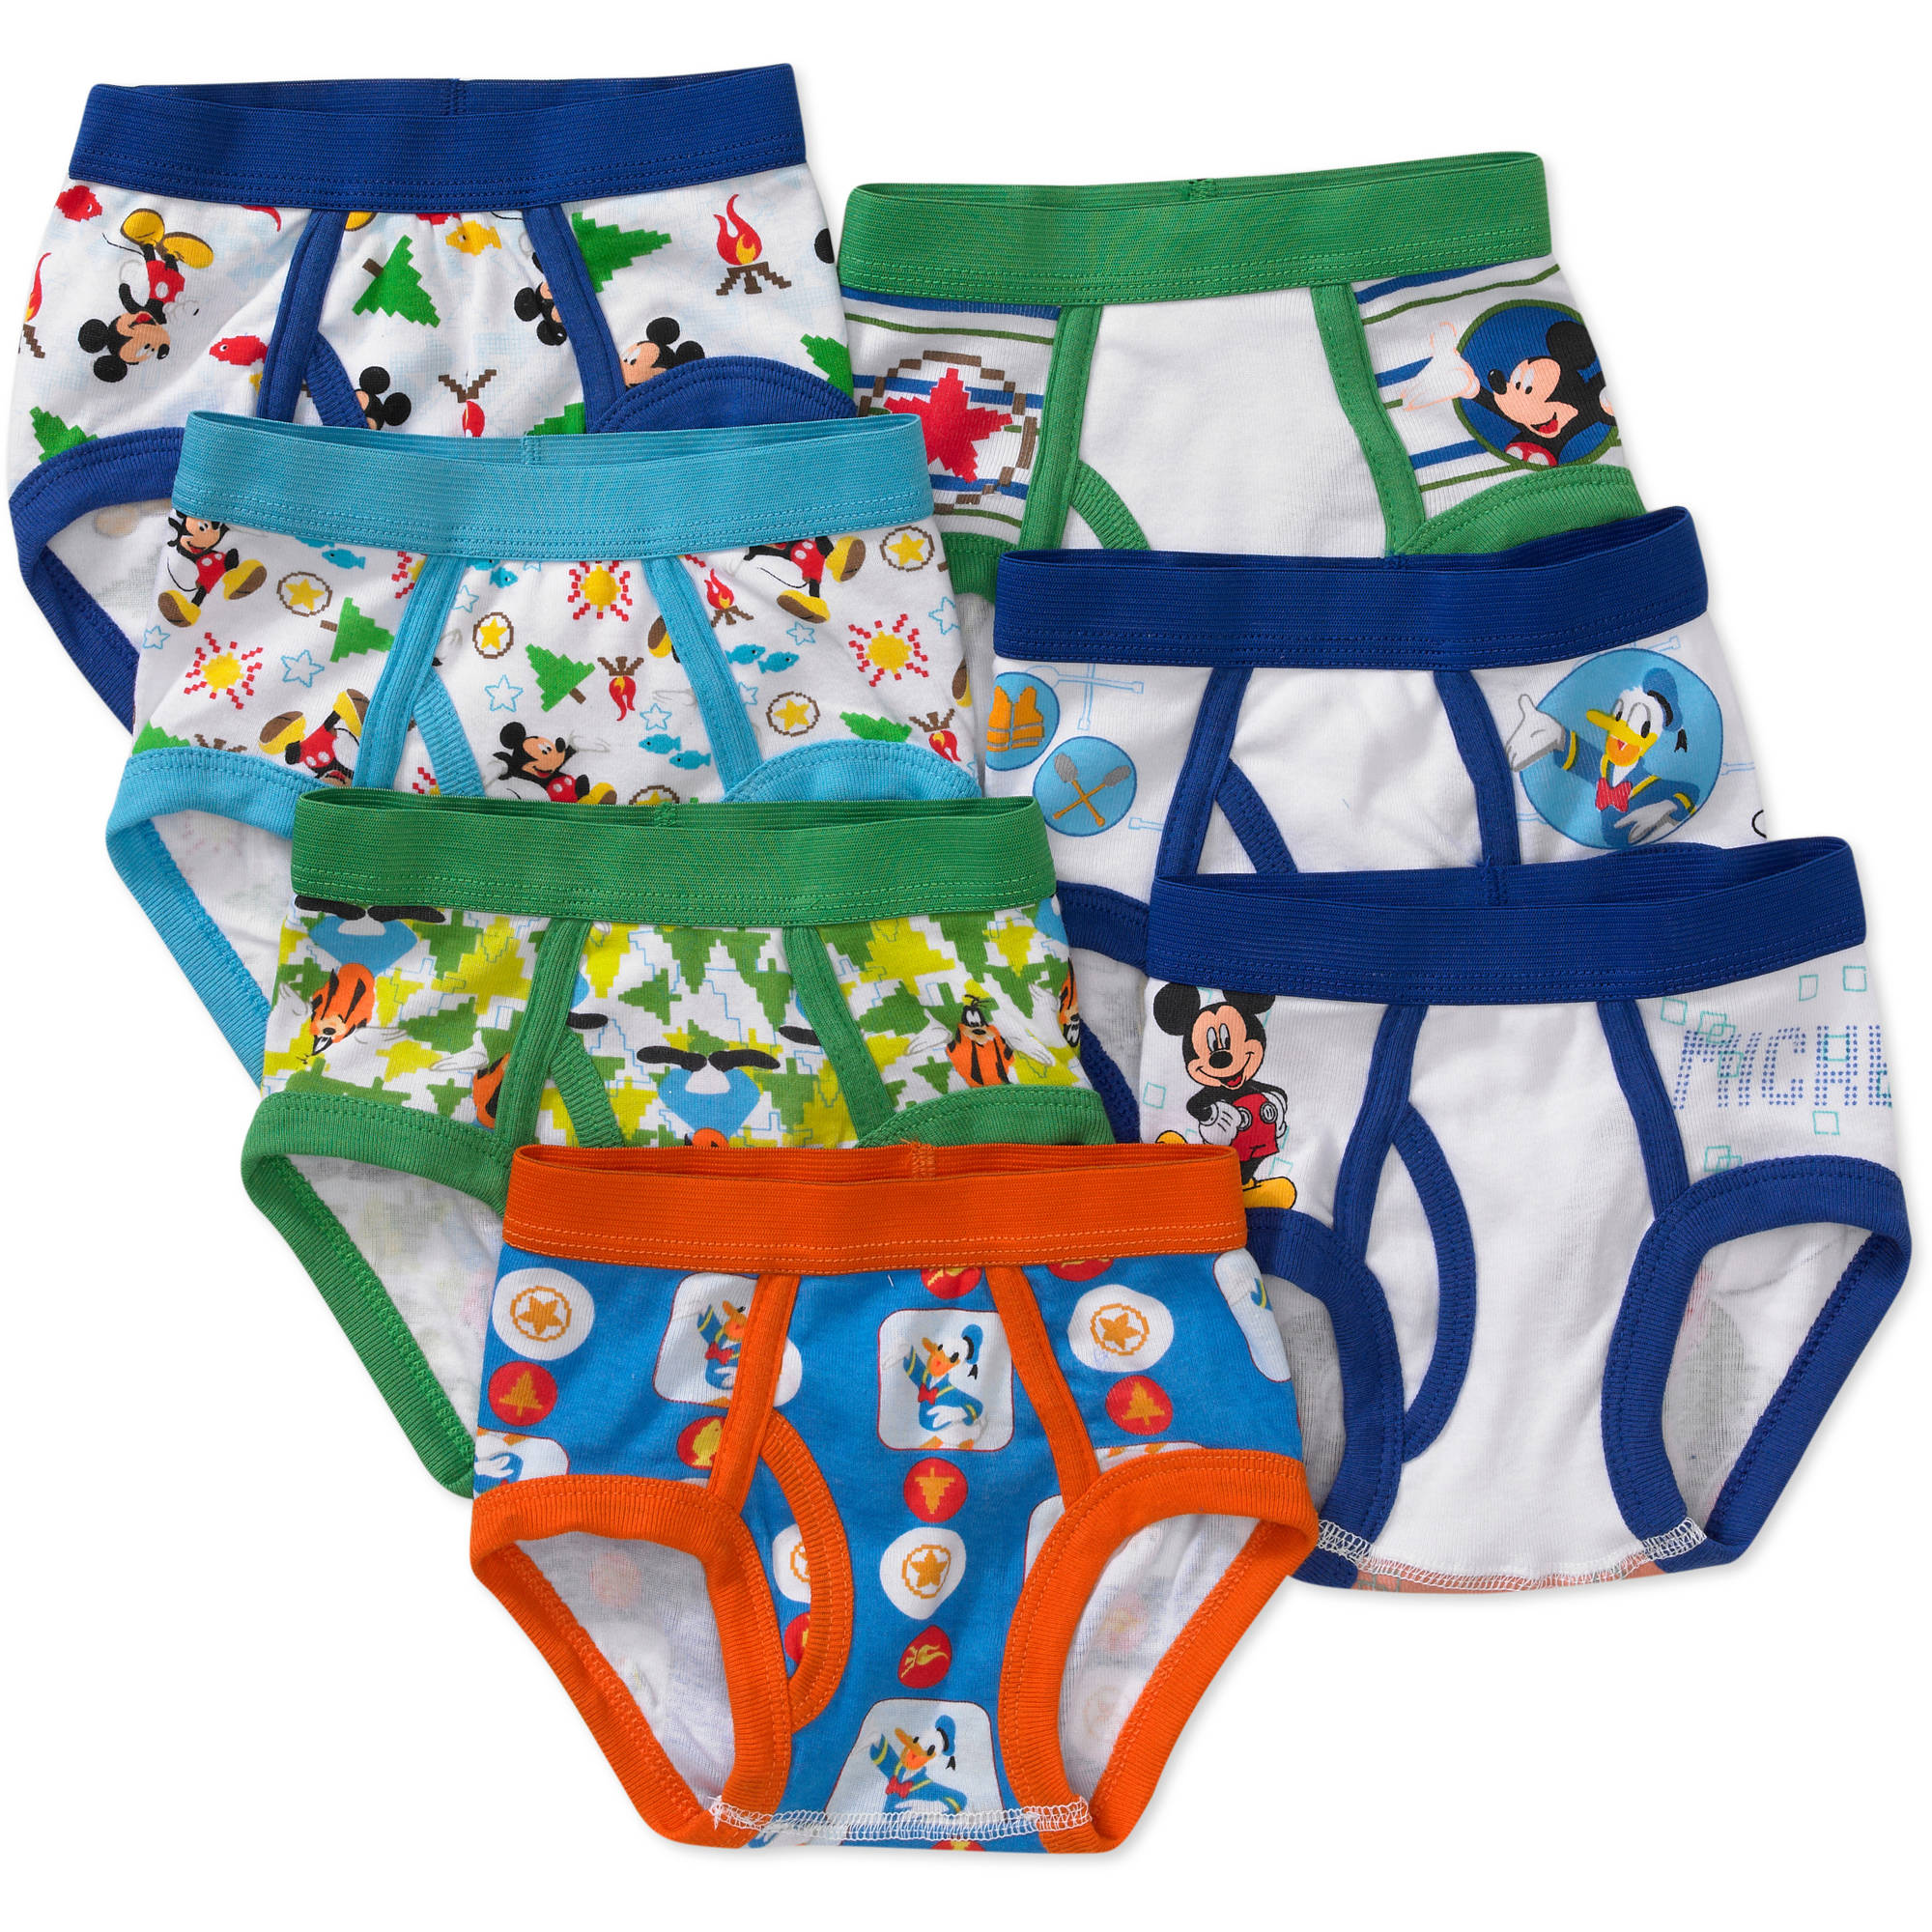 Shop for toddler boy underwear online at Target. Free shipping on purchases over $35 and save 5% every day with your Target REDcard.